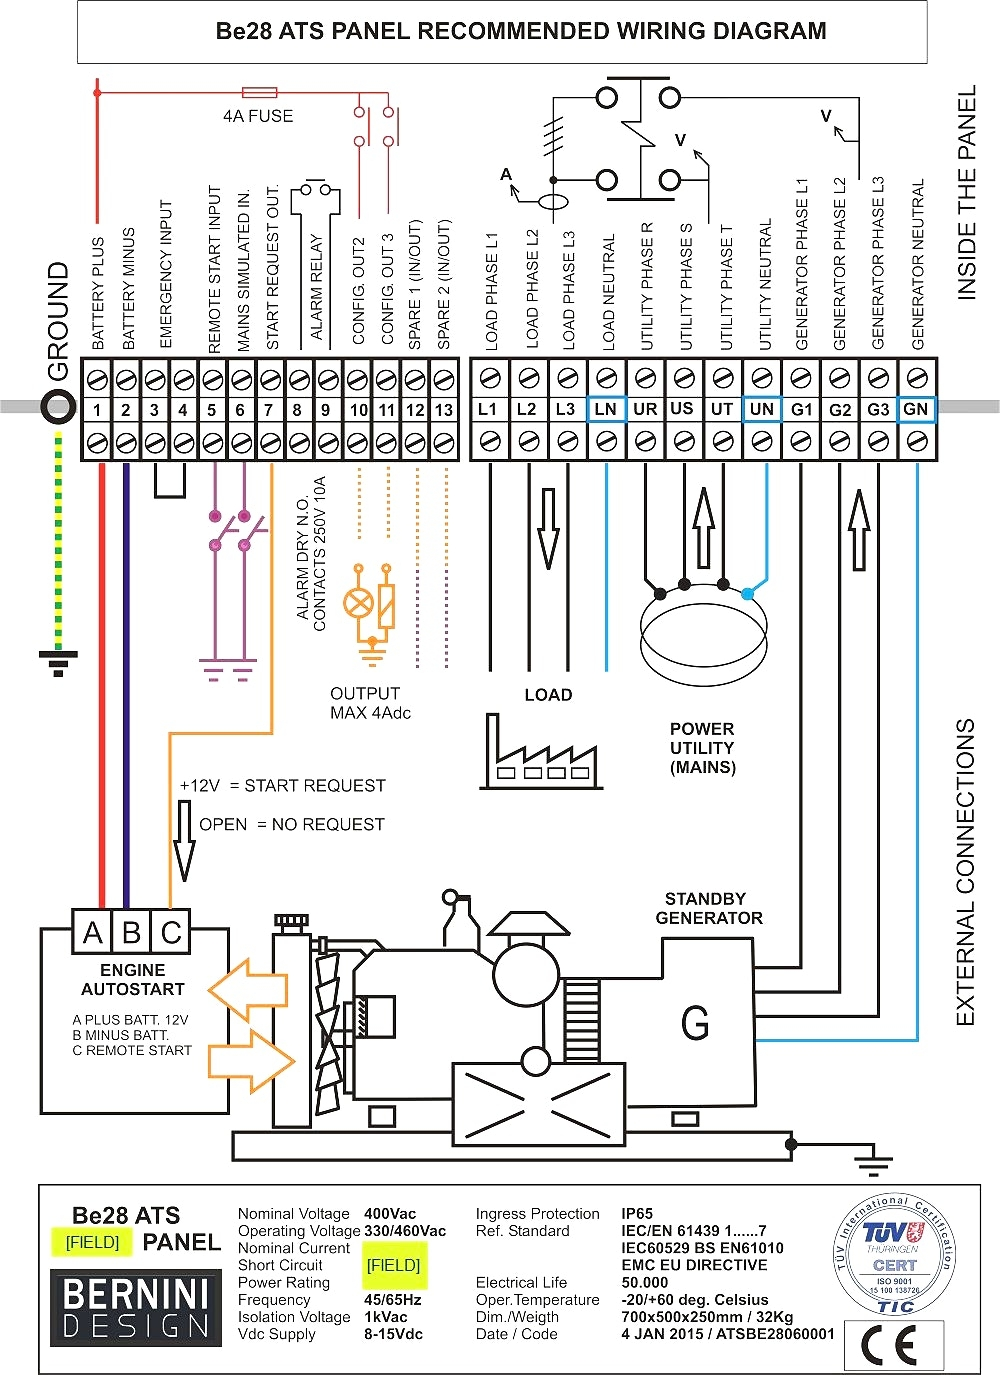 Rv Automatic Transfer Switch Wiring Diagram - Generac ats Wiring Diagram Download Generac Generator Wiring Diagram